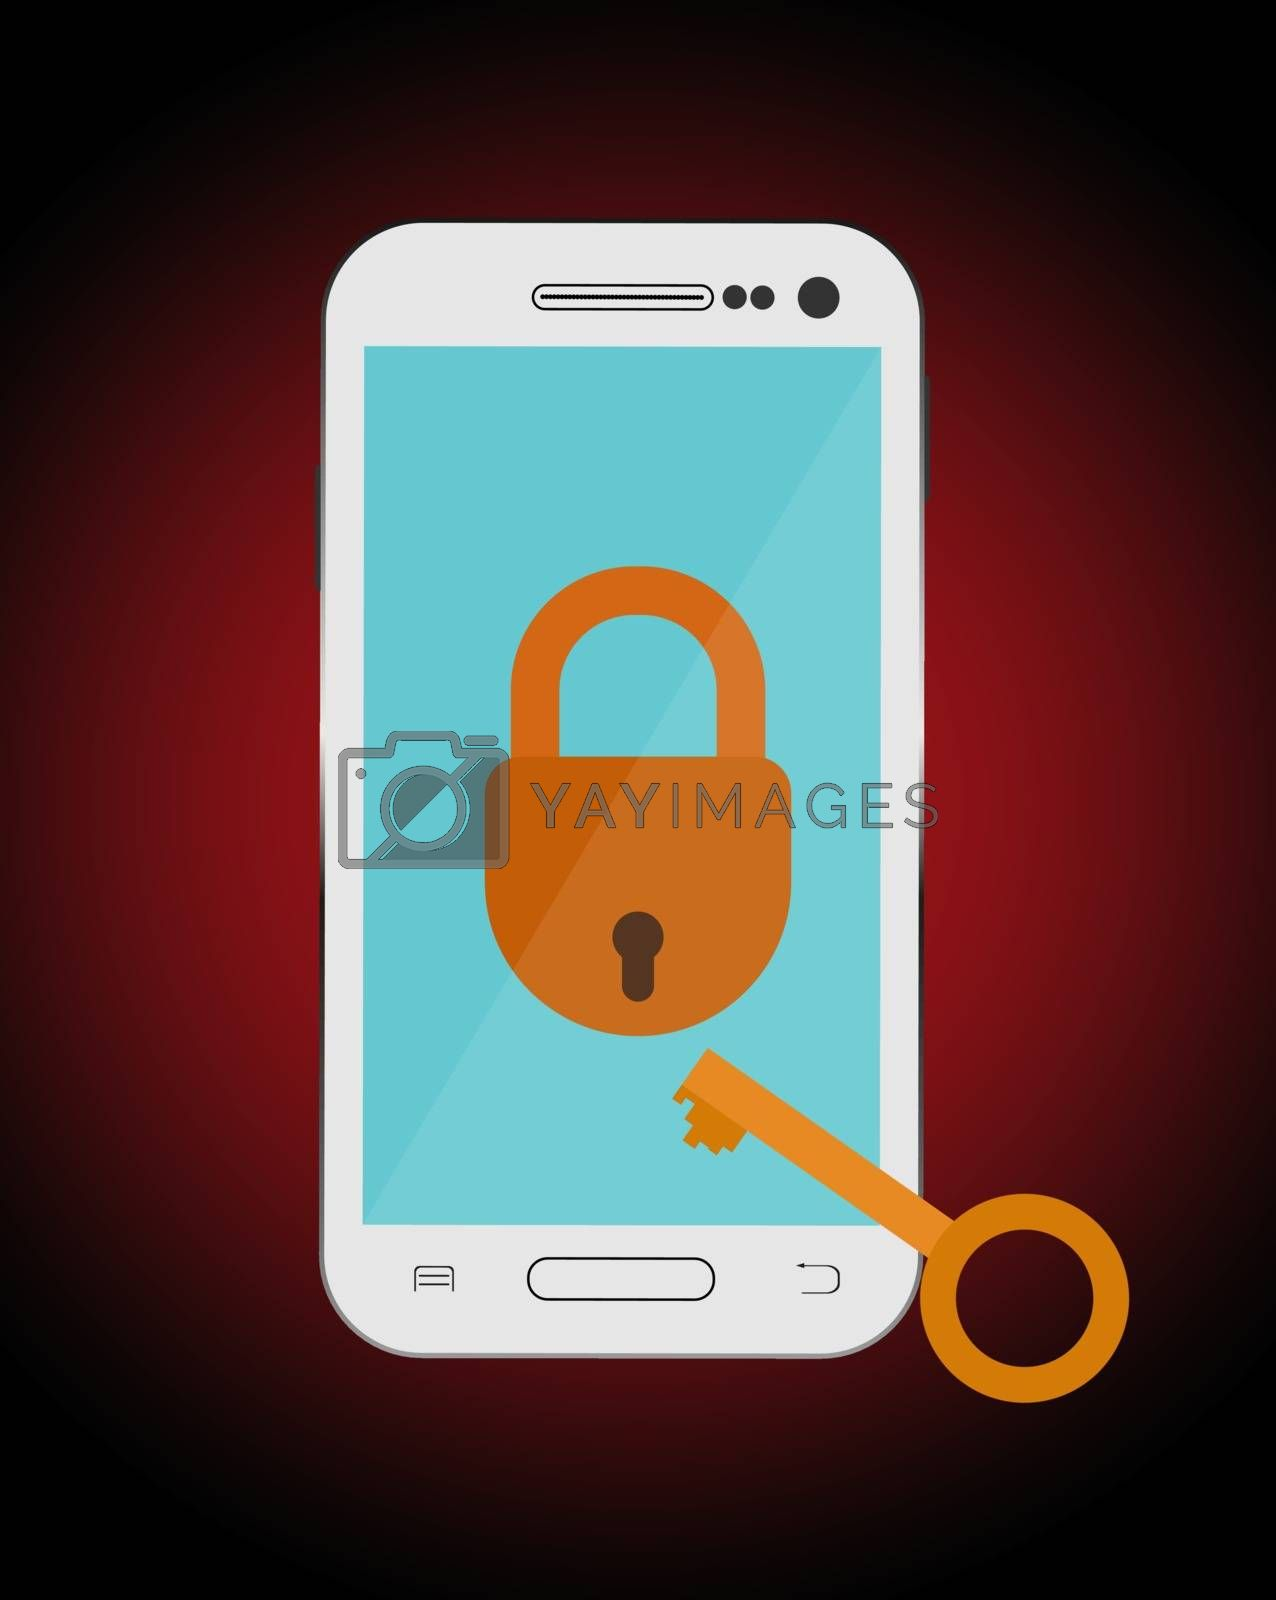 The smartphone is locked, and the key to unlock